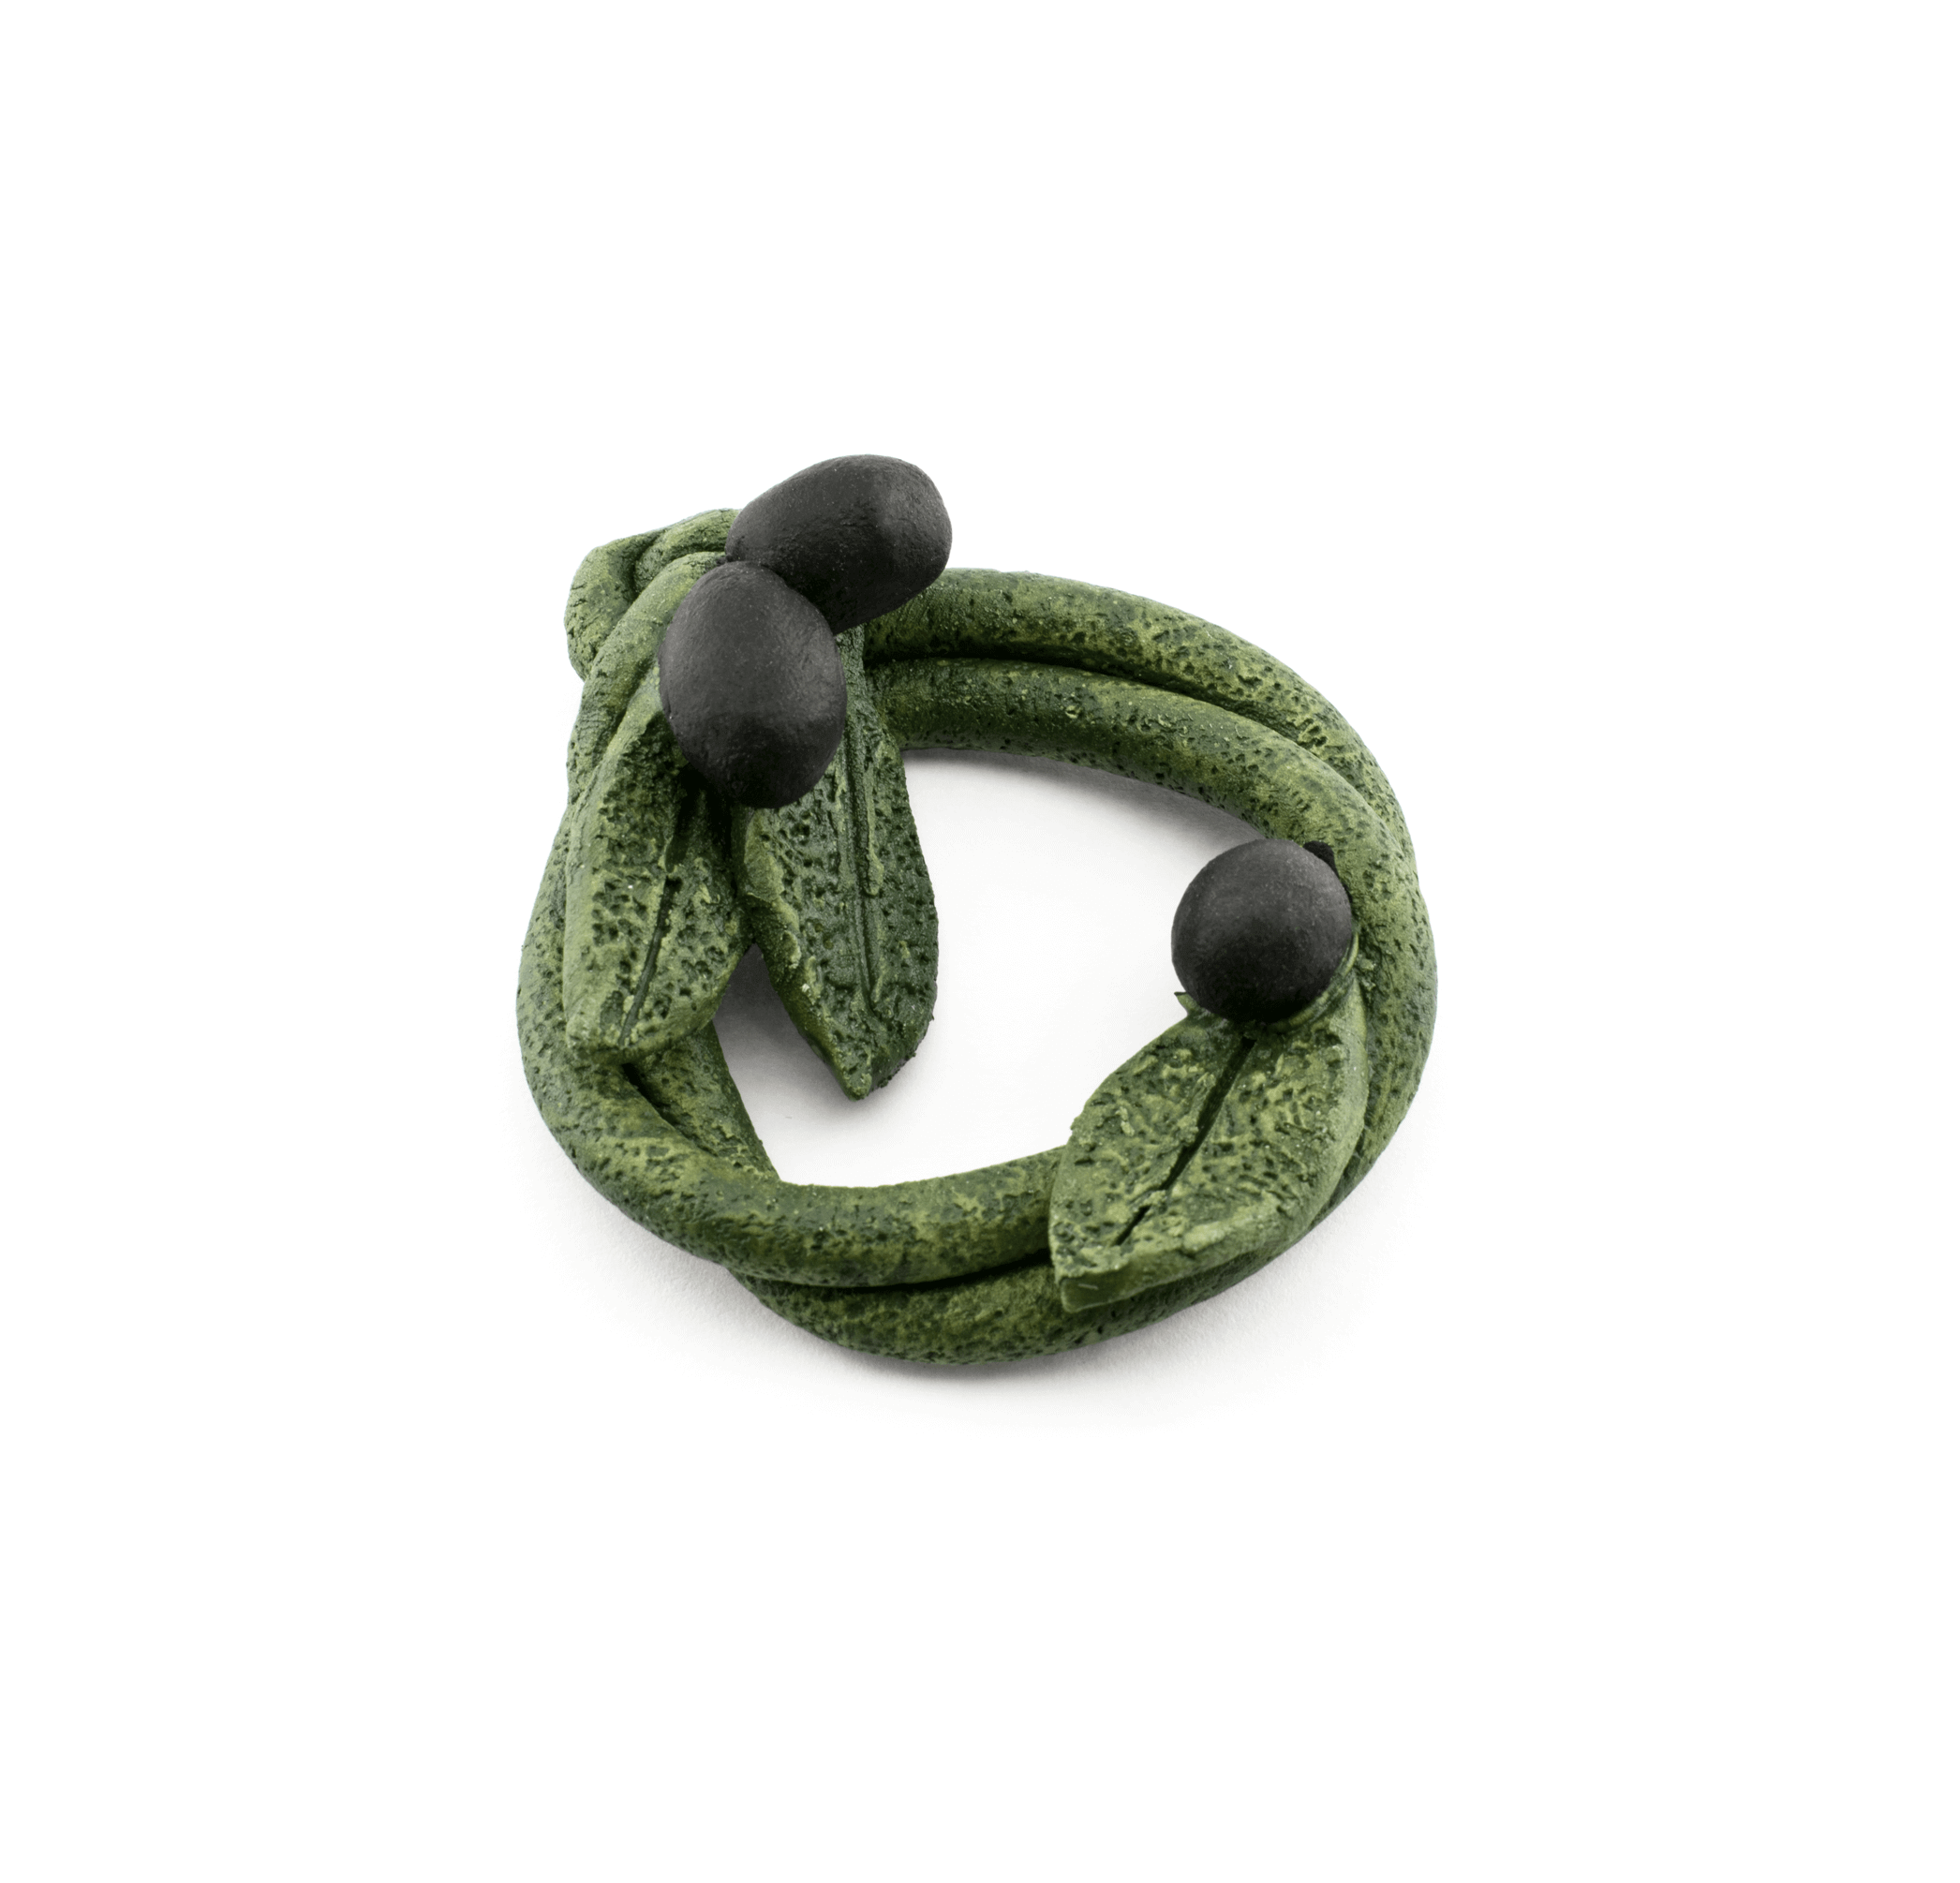 OLIVE WREATH 52mm